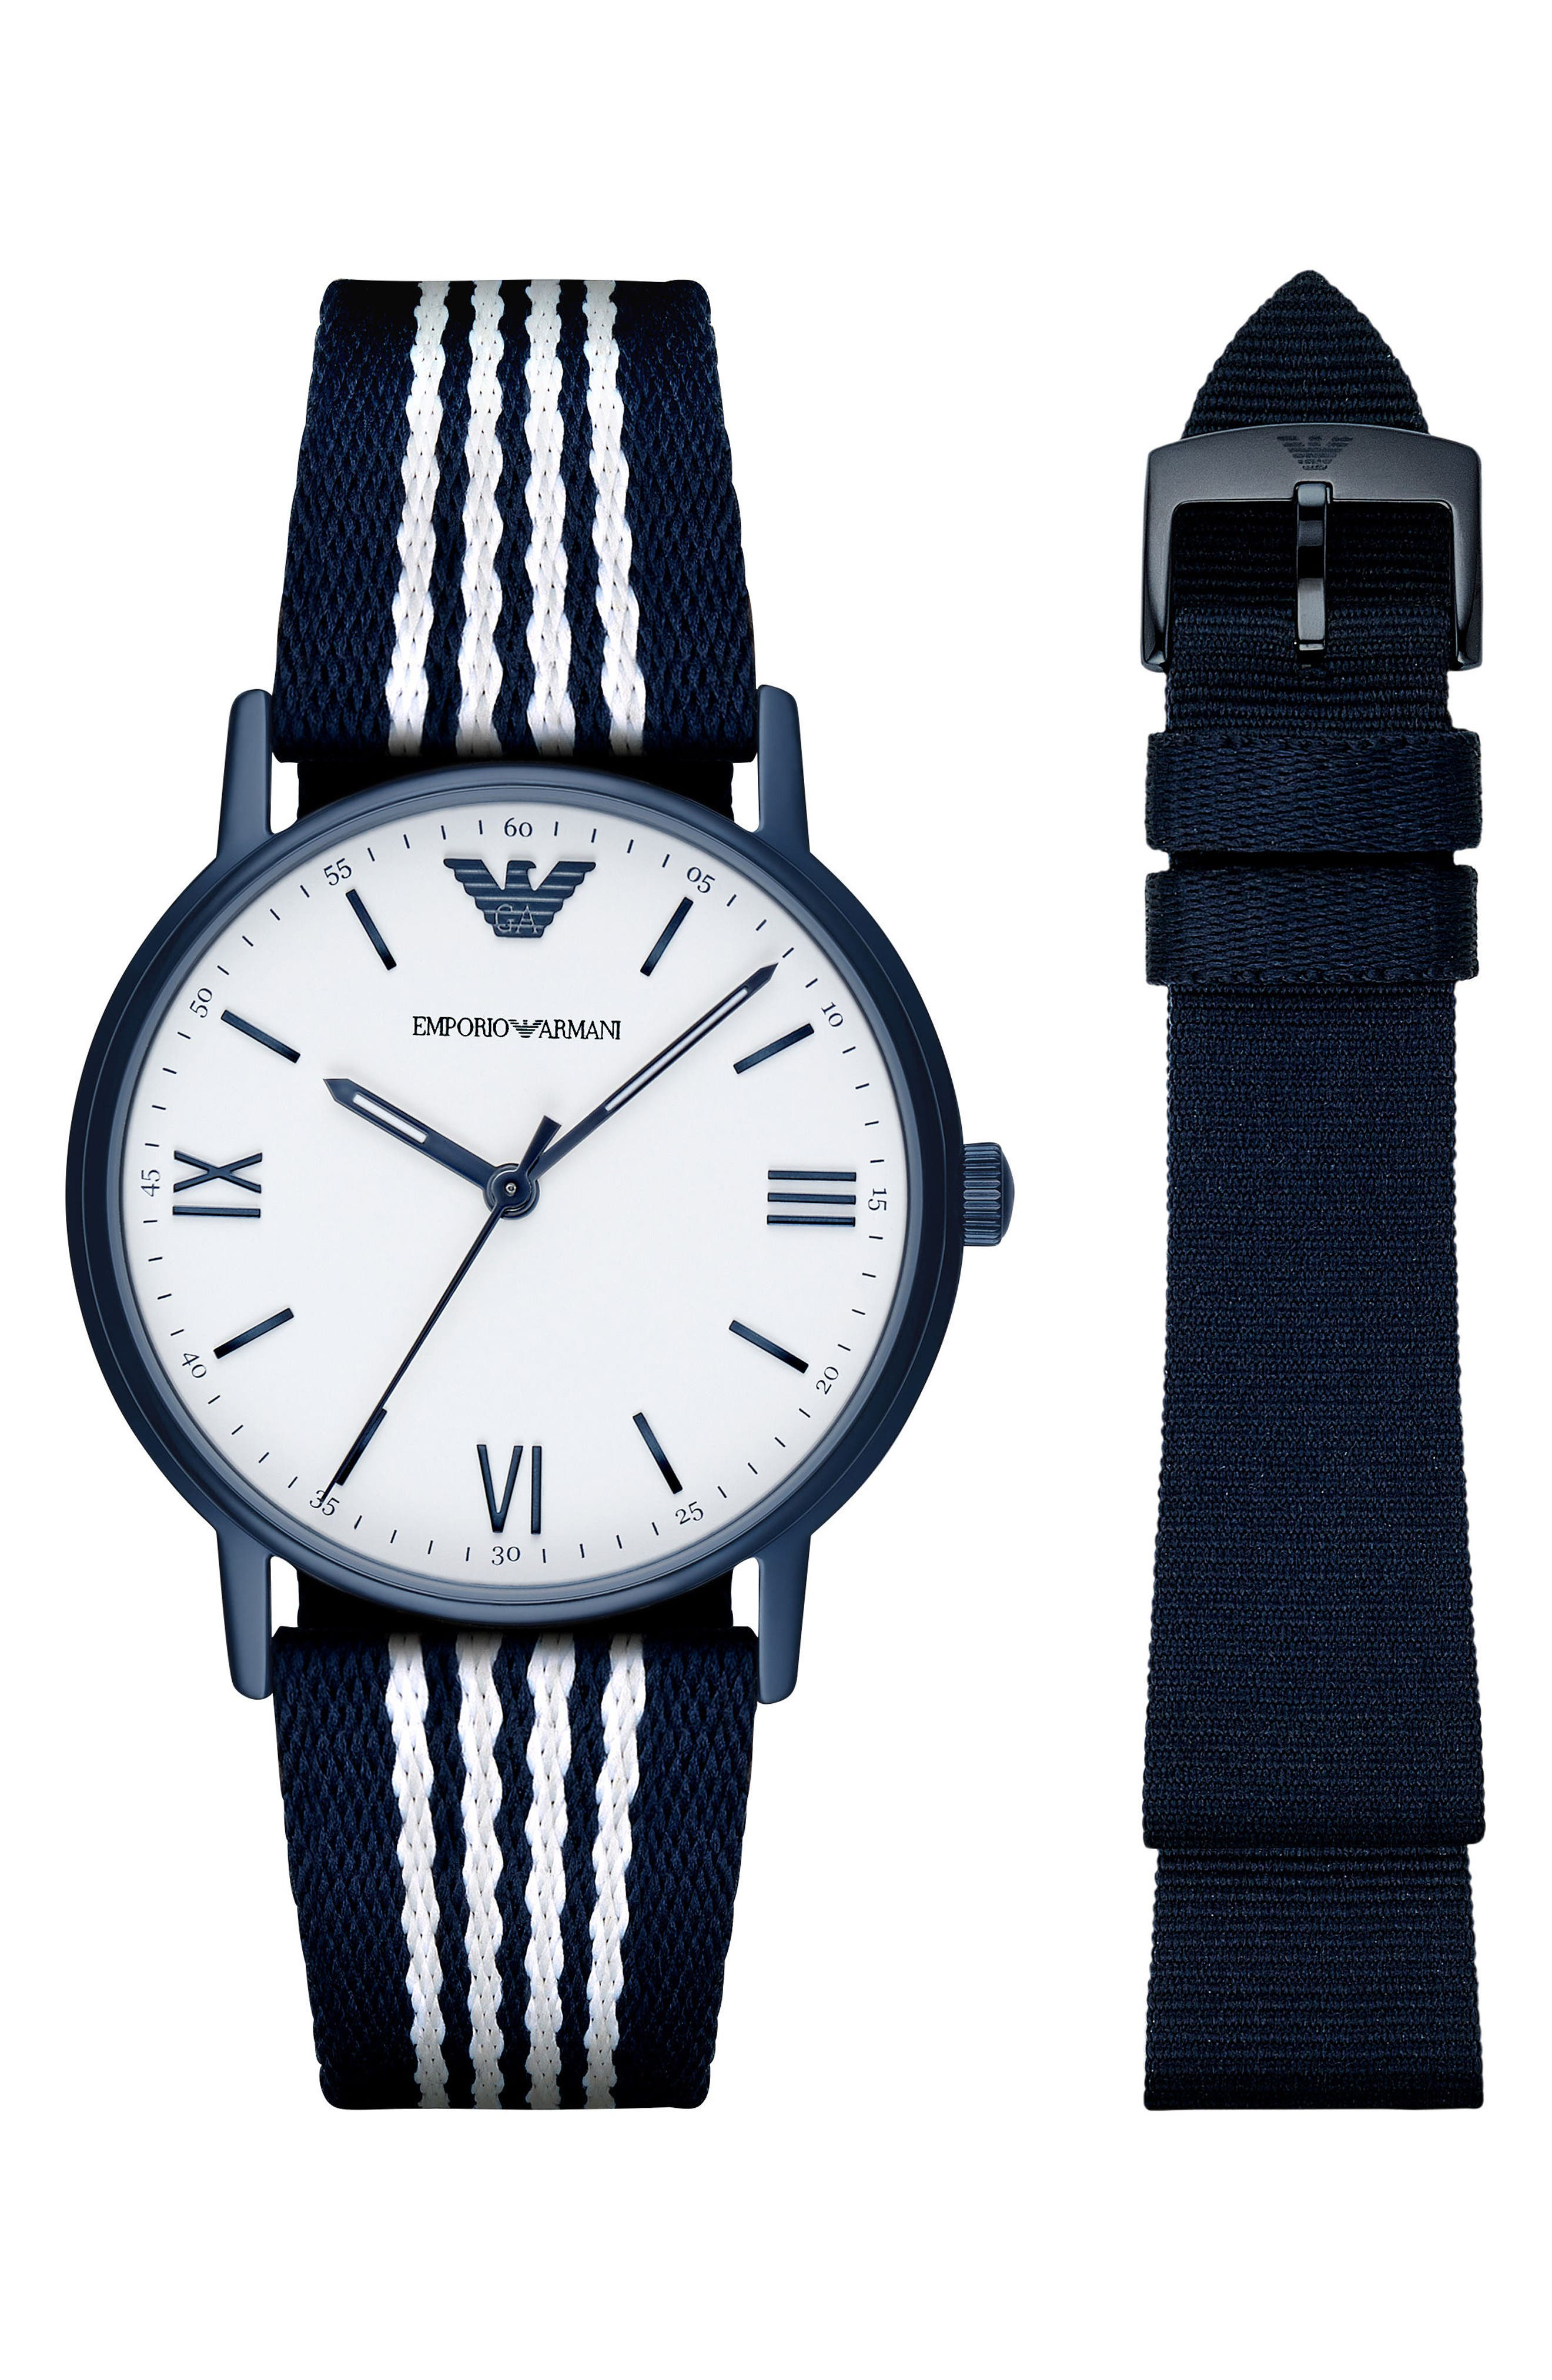 Emporio Armani Watch Gift Set, 41mm